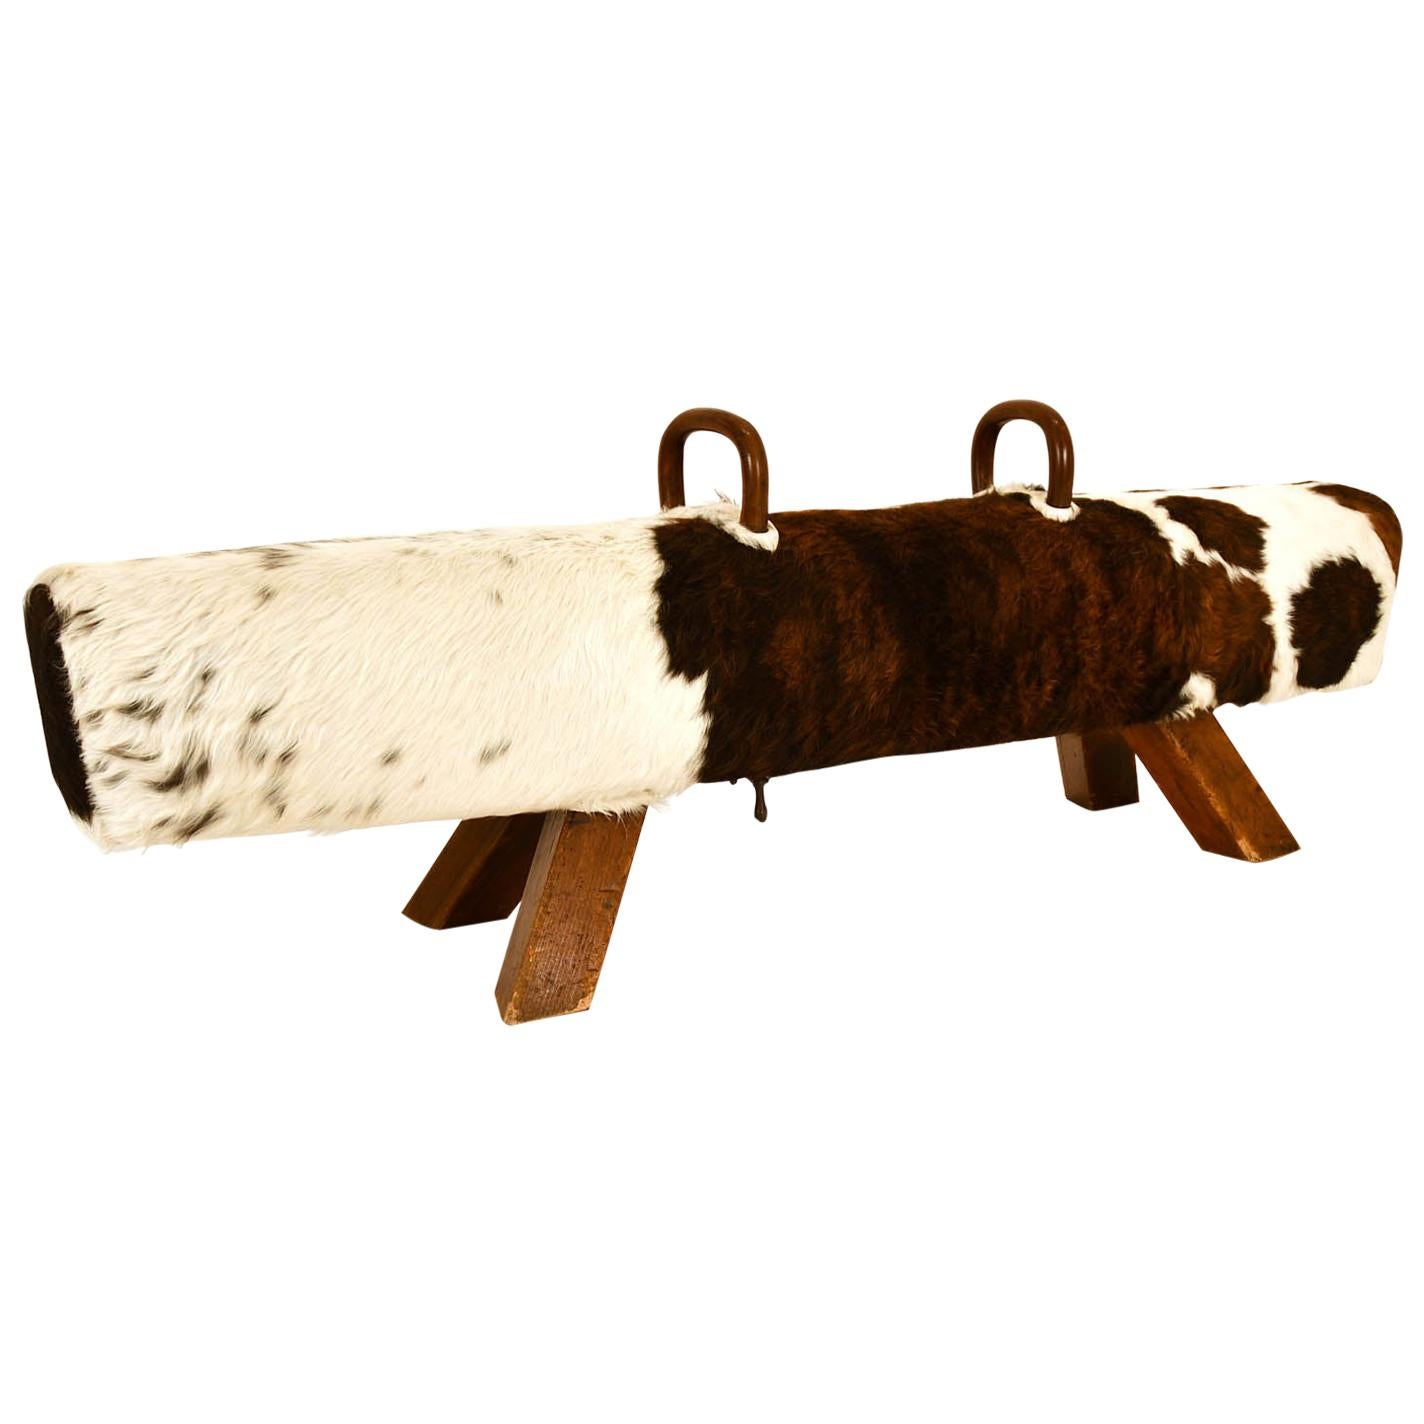 Pommel Horse Czech 1930 Gymnastic Item Bench Leather Cowhide